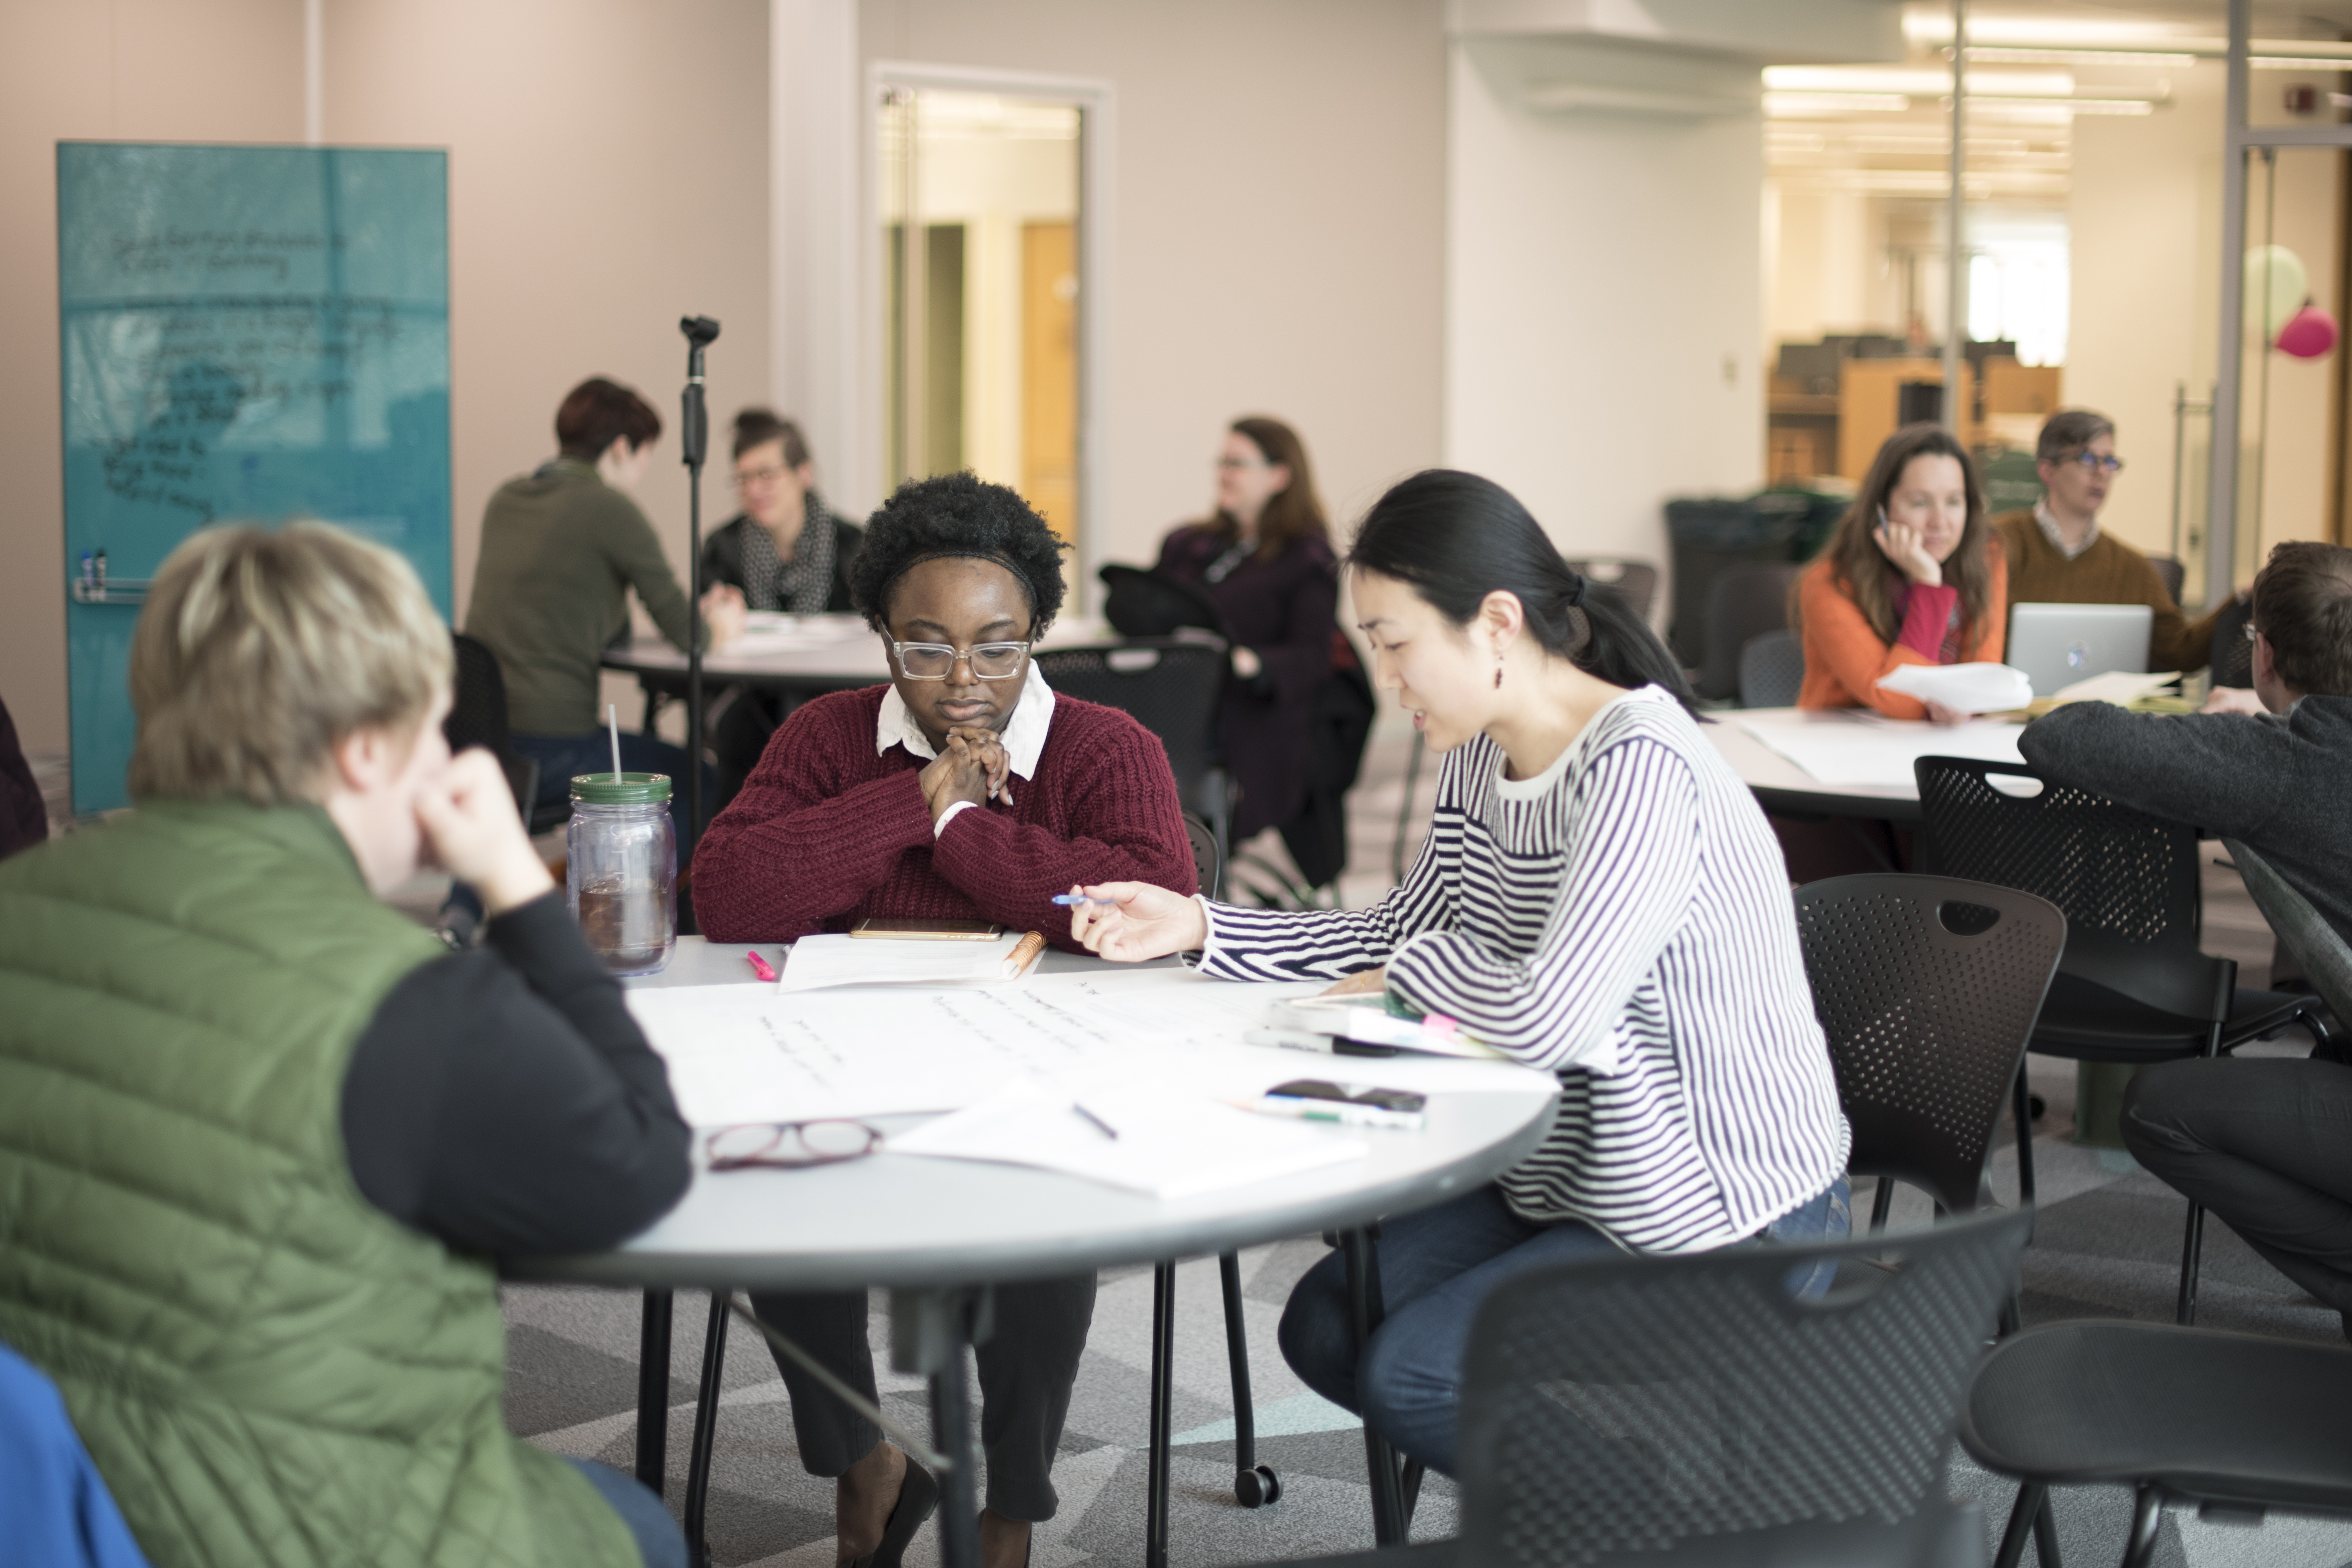 This image shows members of the MSU Libary working at a round table in the Digital Scholarship Lab's Flex Space